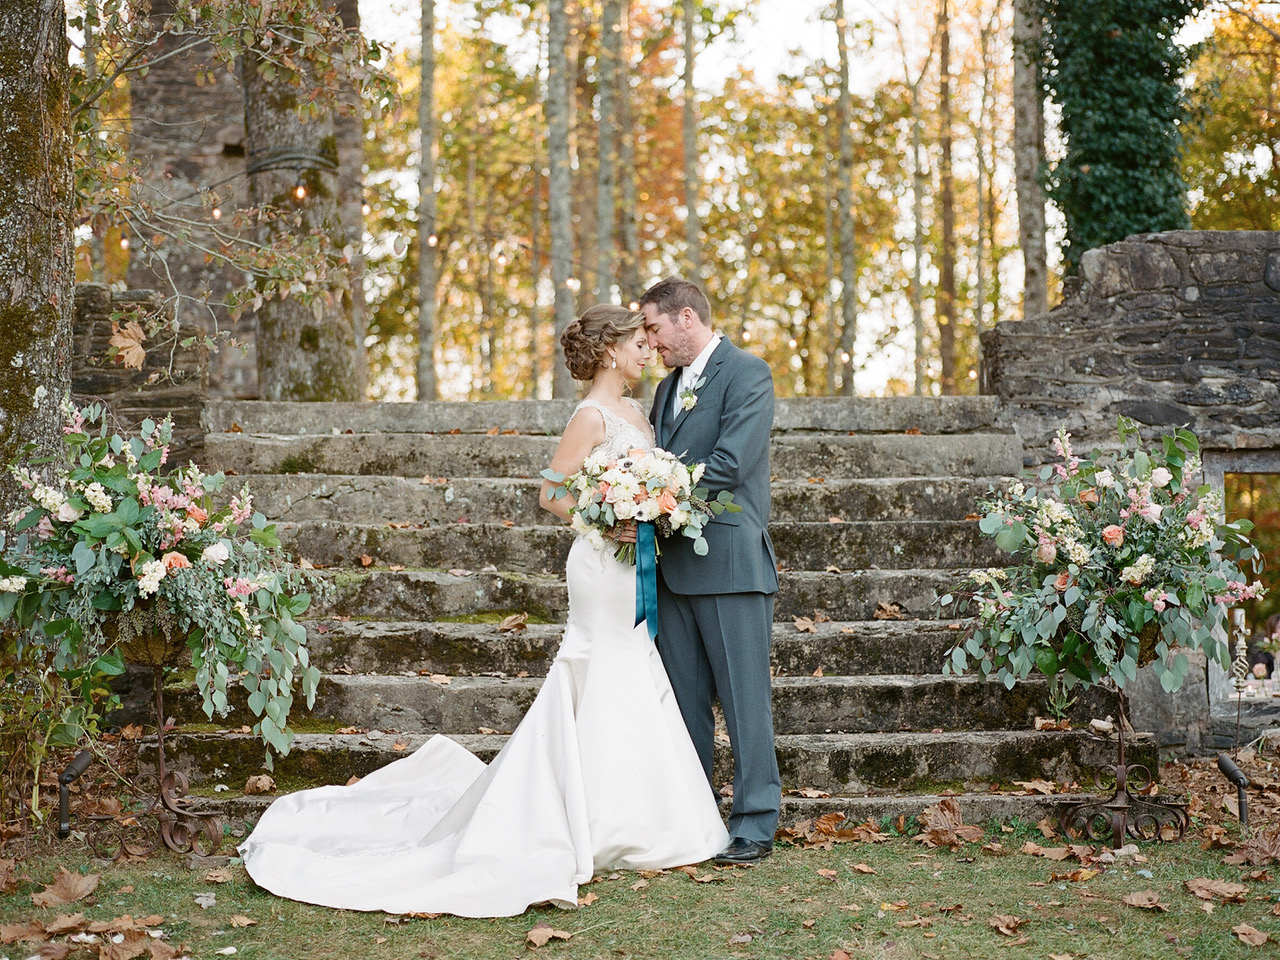 A Romantic Peaches and Cream Outdoor Wedding at the Ruins featuring white anemones, peach roses, white ranunculus, white dahlias, privet berry and silver dollar eucalyptus.   Flowers by Flower Buds. Photo by Davy Whitener Photography. Venue The Ruins at Kellum Valley Farm